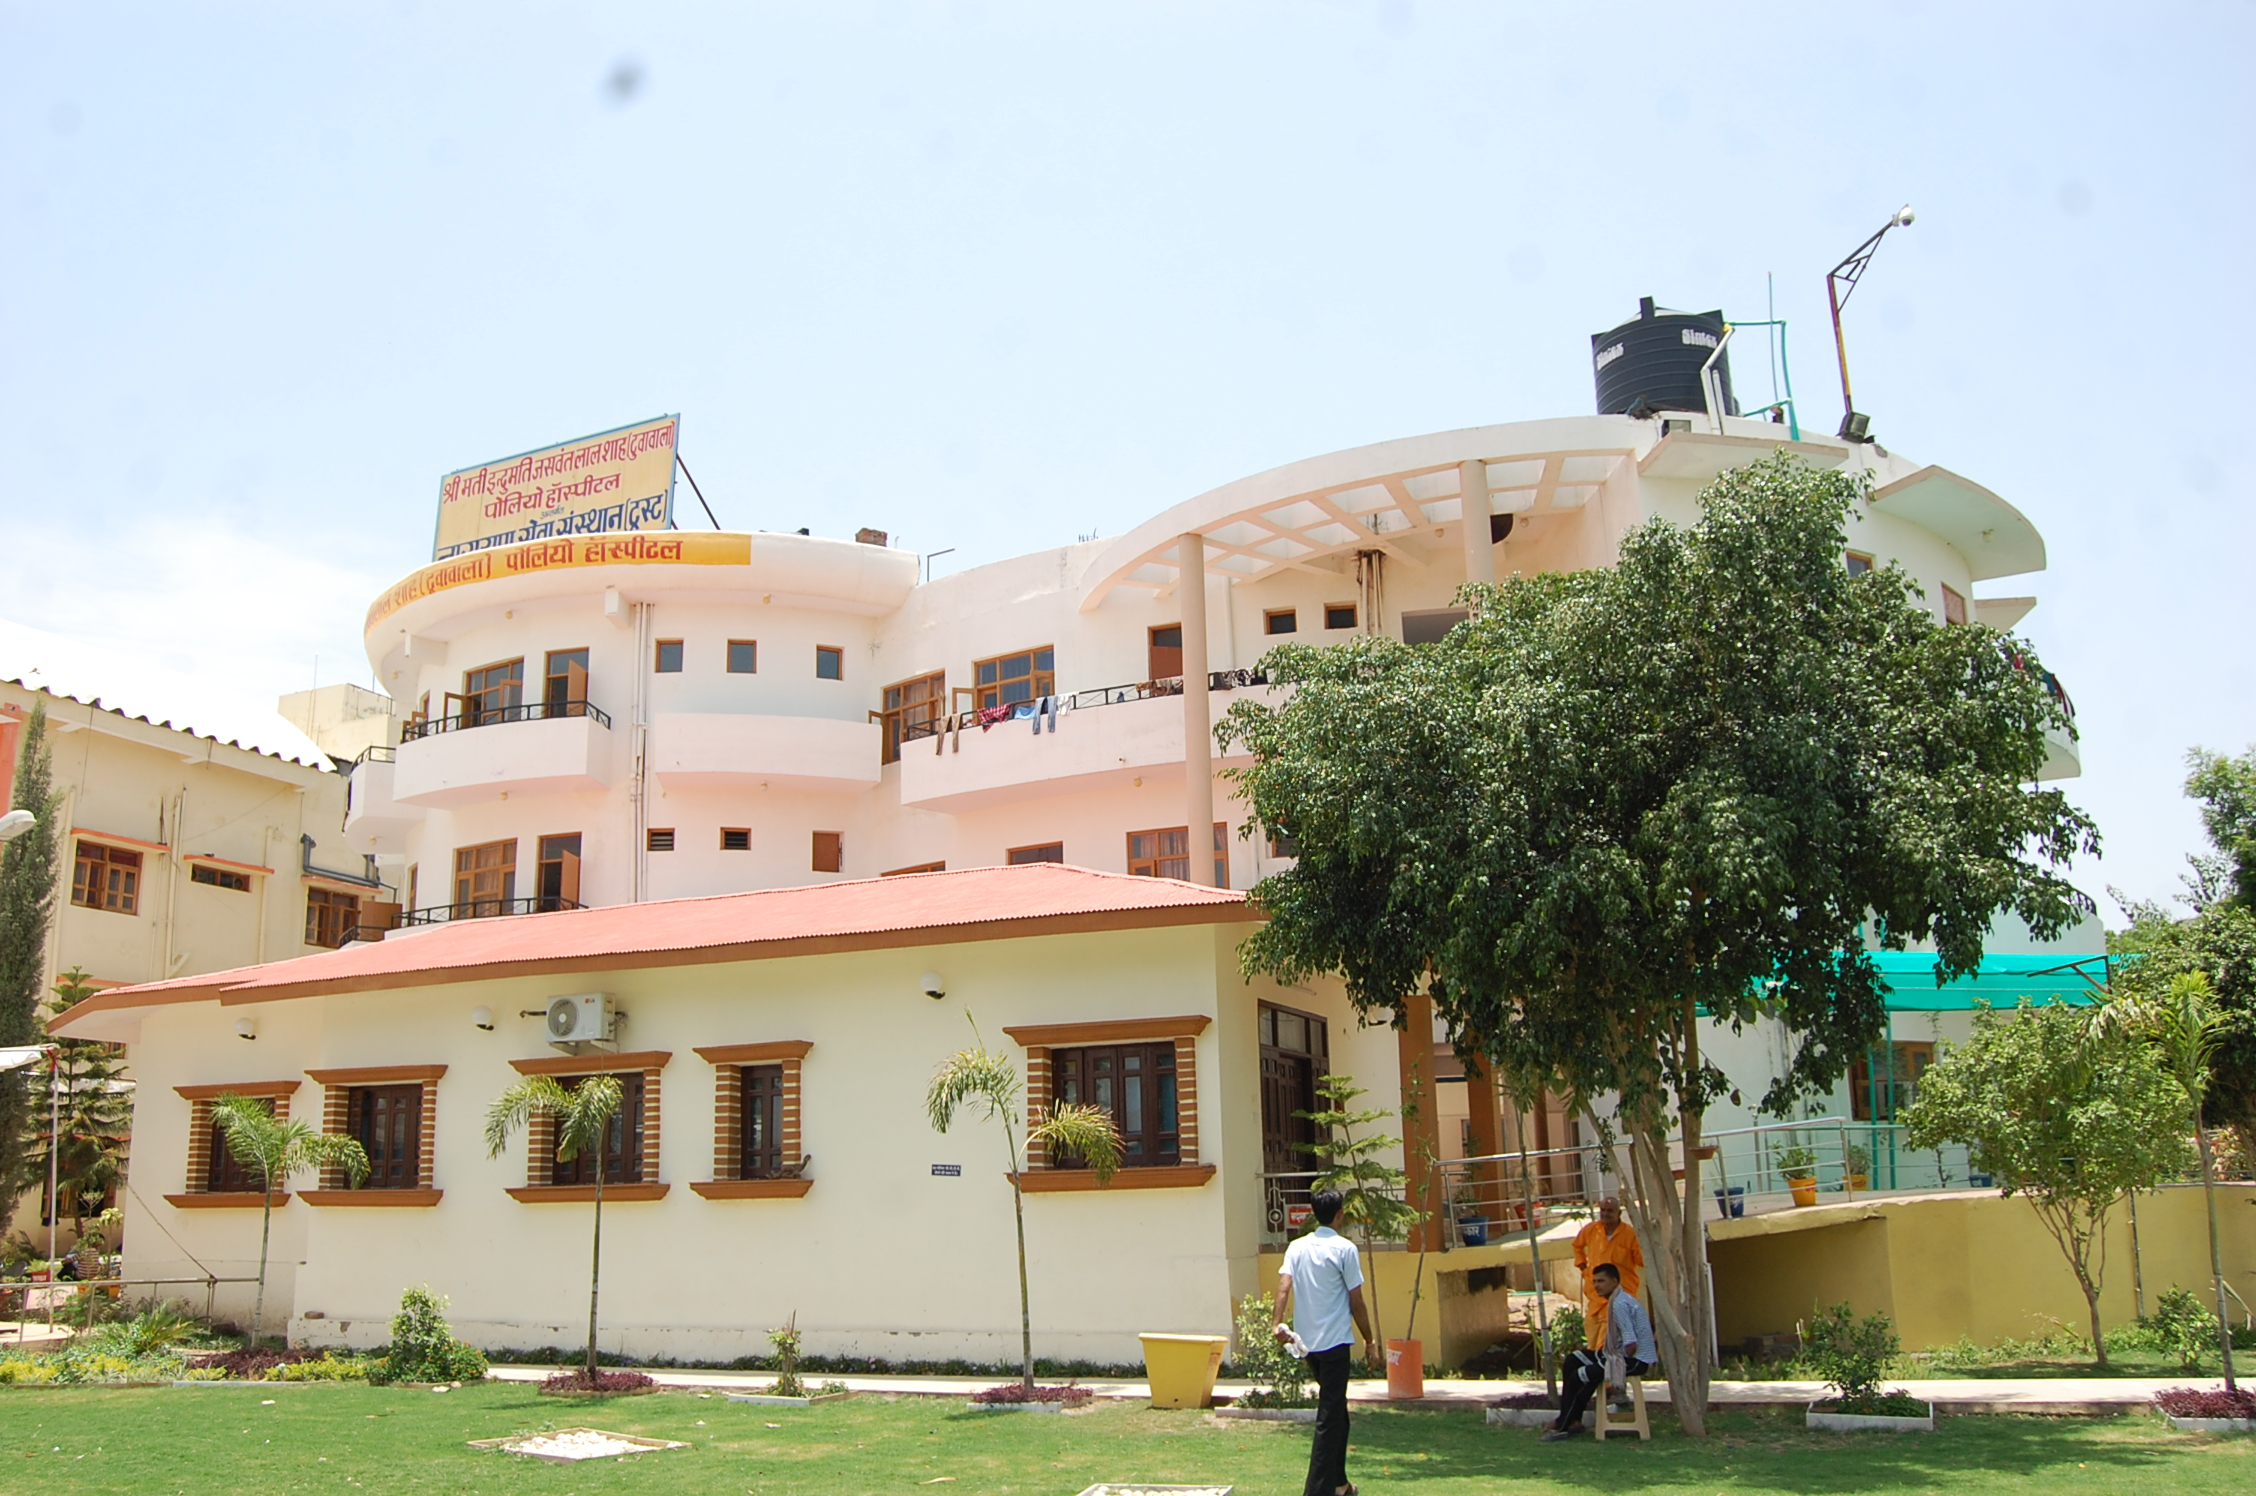 Polio Hospital at Narayan Seva Sansthan